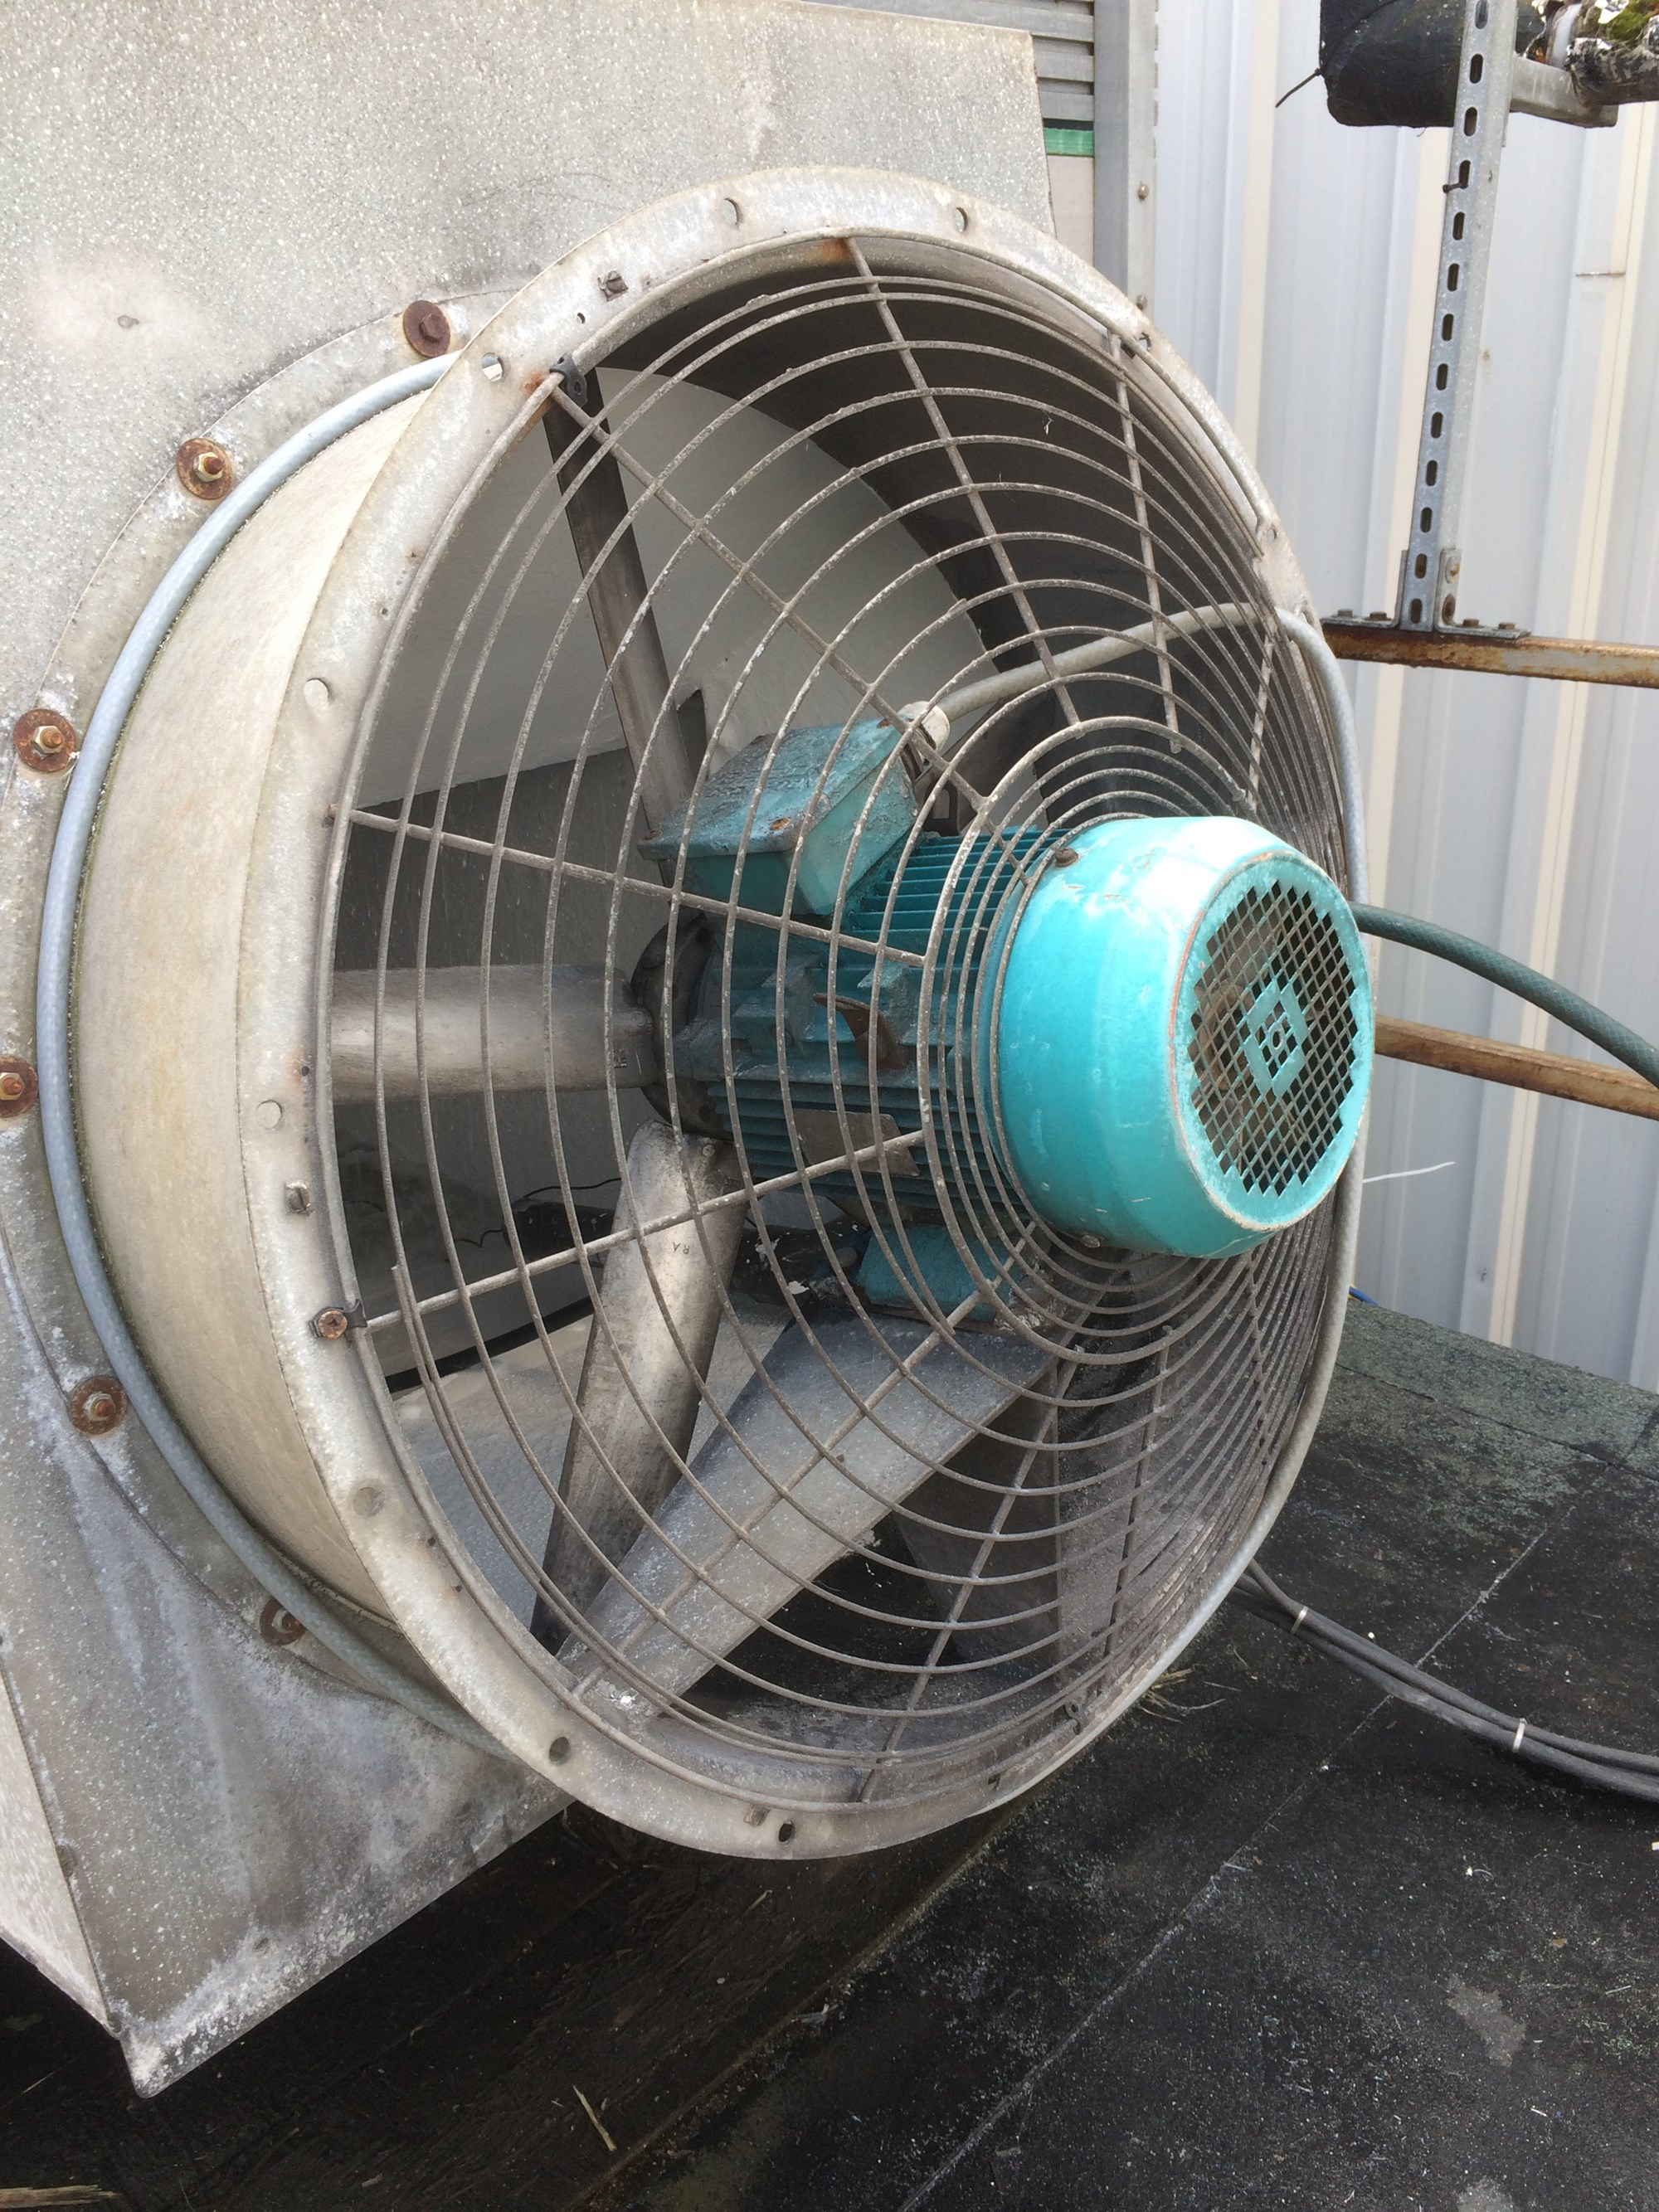 Elta Fan cooling tower inlet with mesh guard and extended motor cowl.